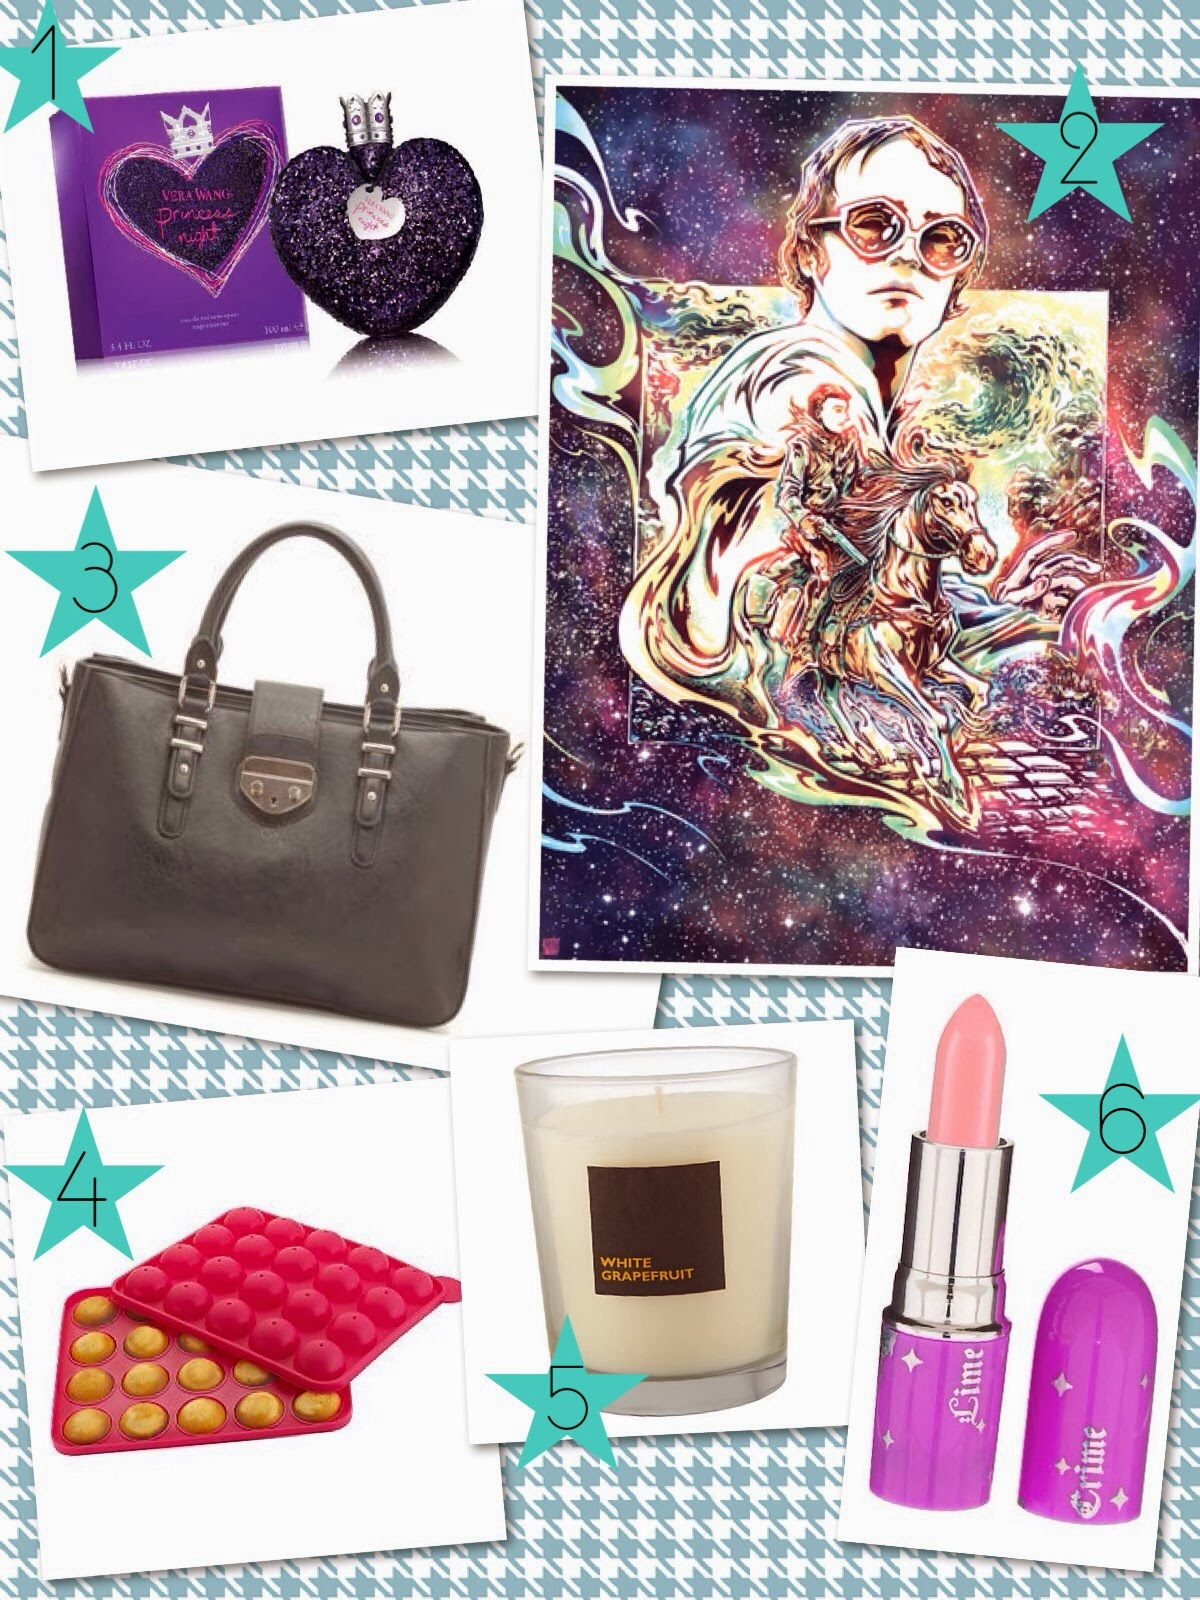 Vera-Wang-Night-Princess-Clarks-bag-Candle-Lime-Crime-Babette-Cake-Pops